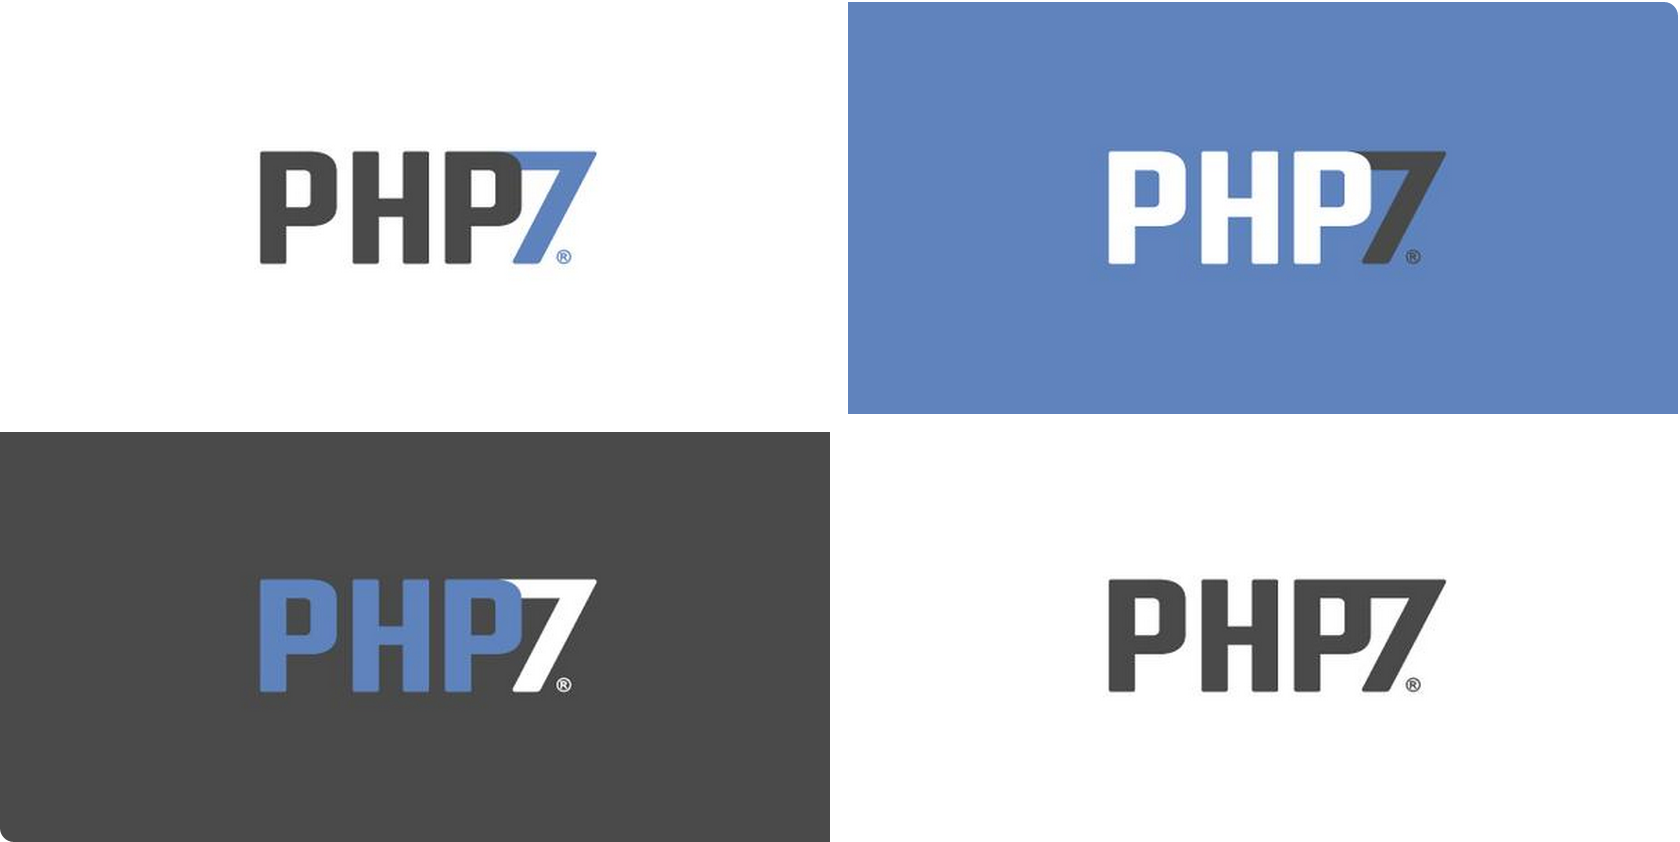 Php7 logo by Vincent Pontier